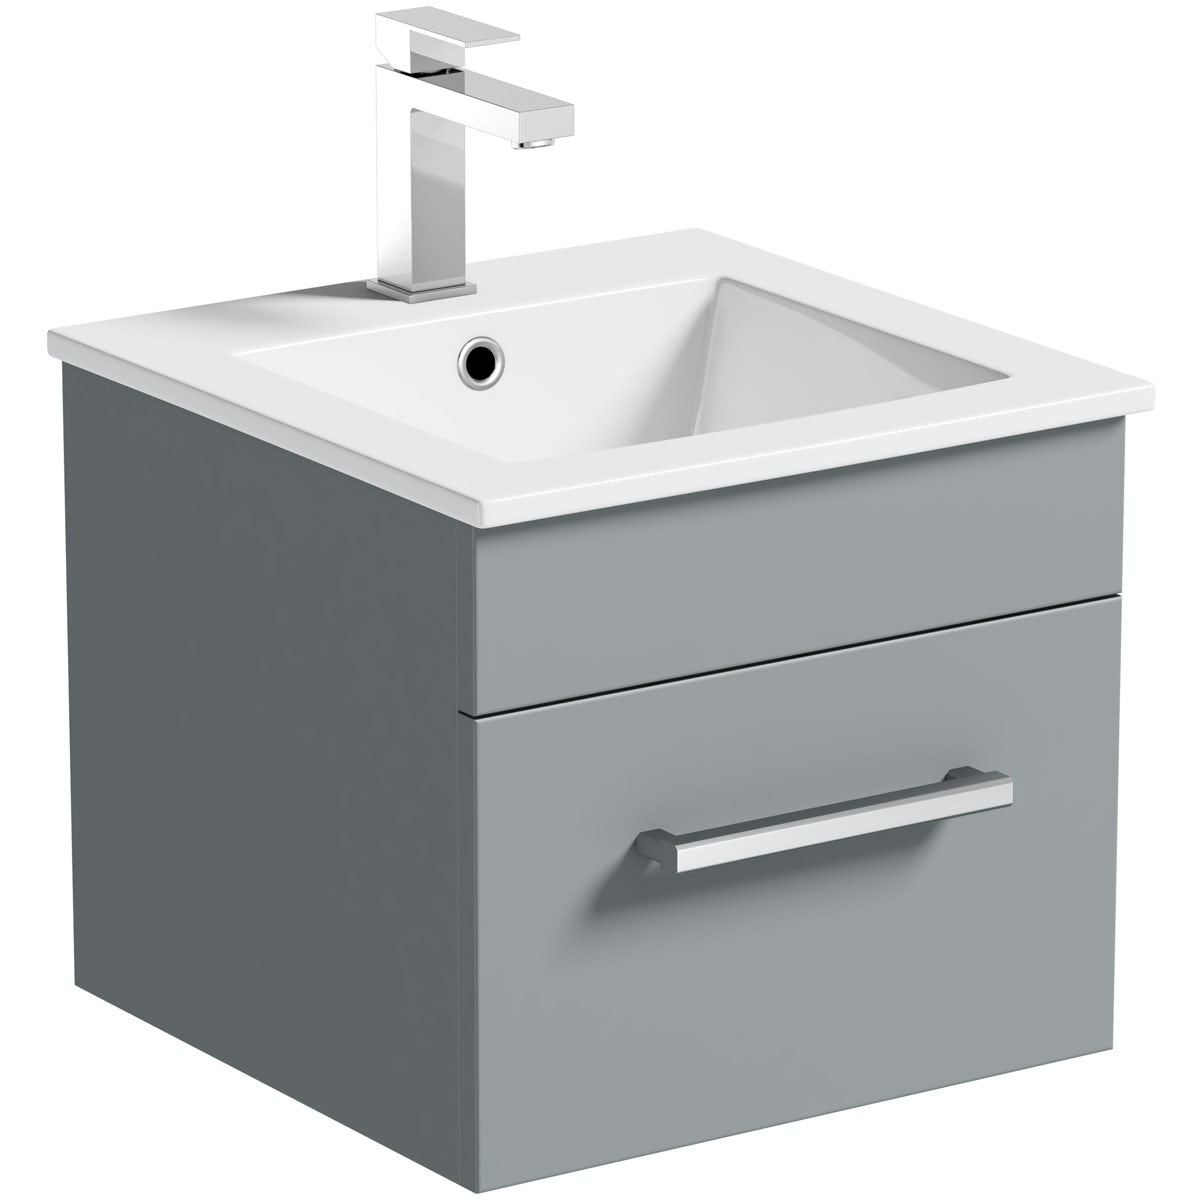 Orchard Derwent stone grey wall hung cloakroom vanity unit and basin 420mm